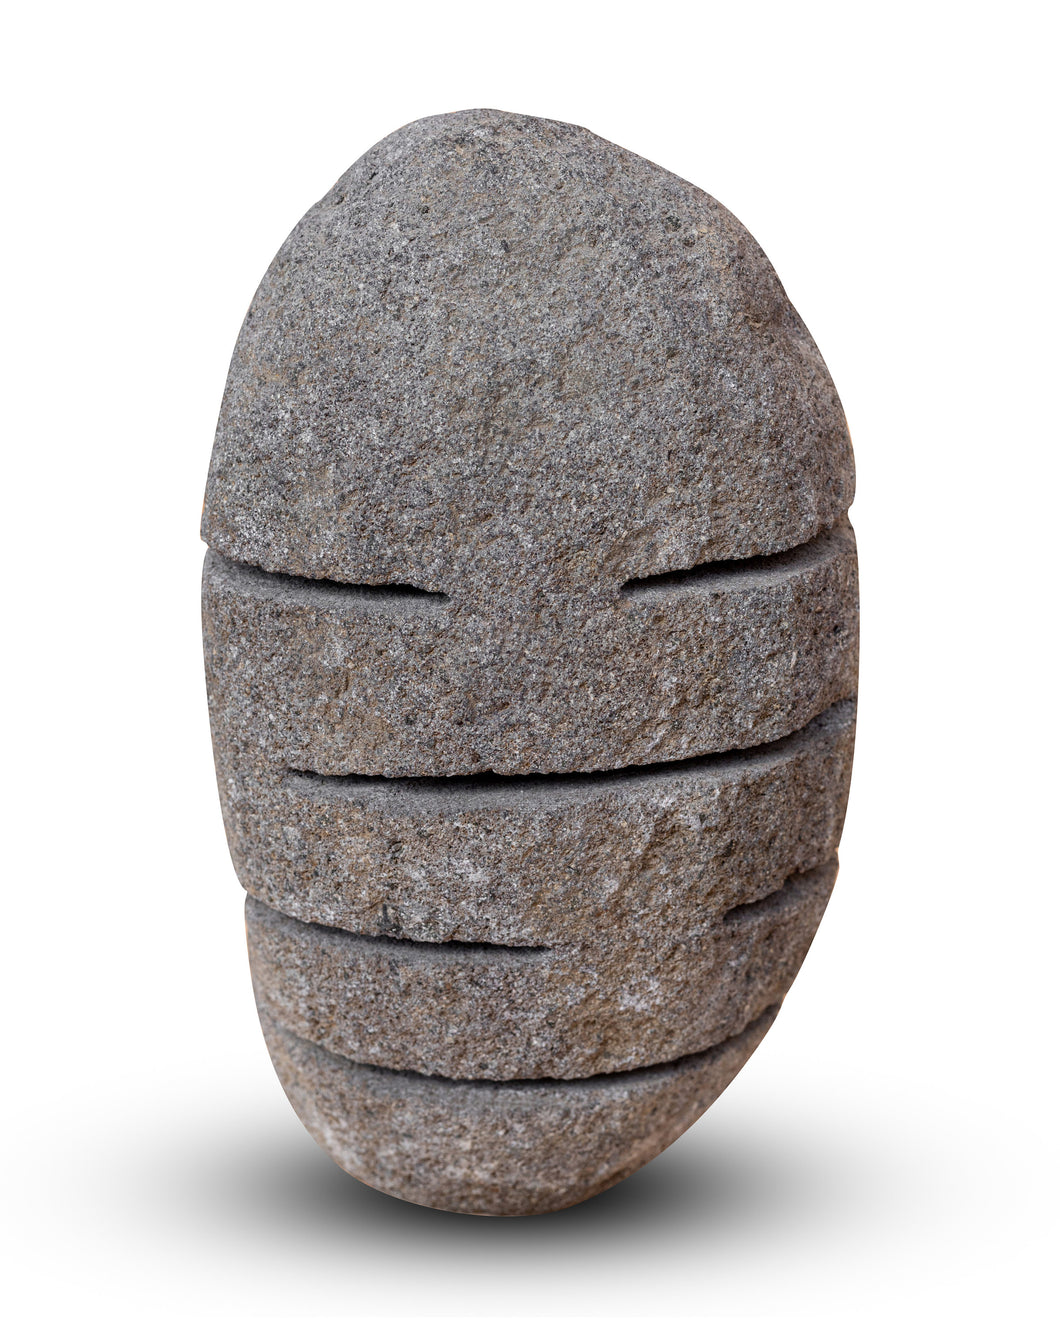 River Stone Egg Lantern , Modern Garden Candle Lighting #R2 (COMING IN THE END OF AUGUST)